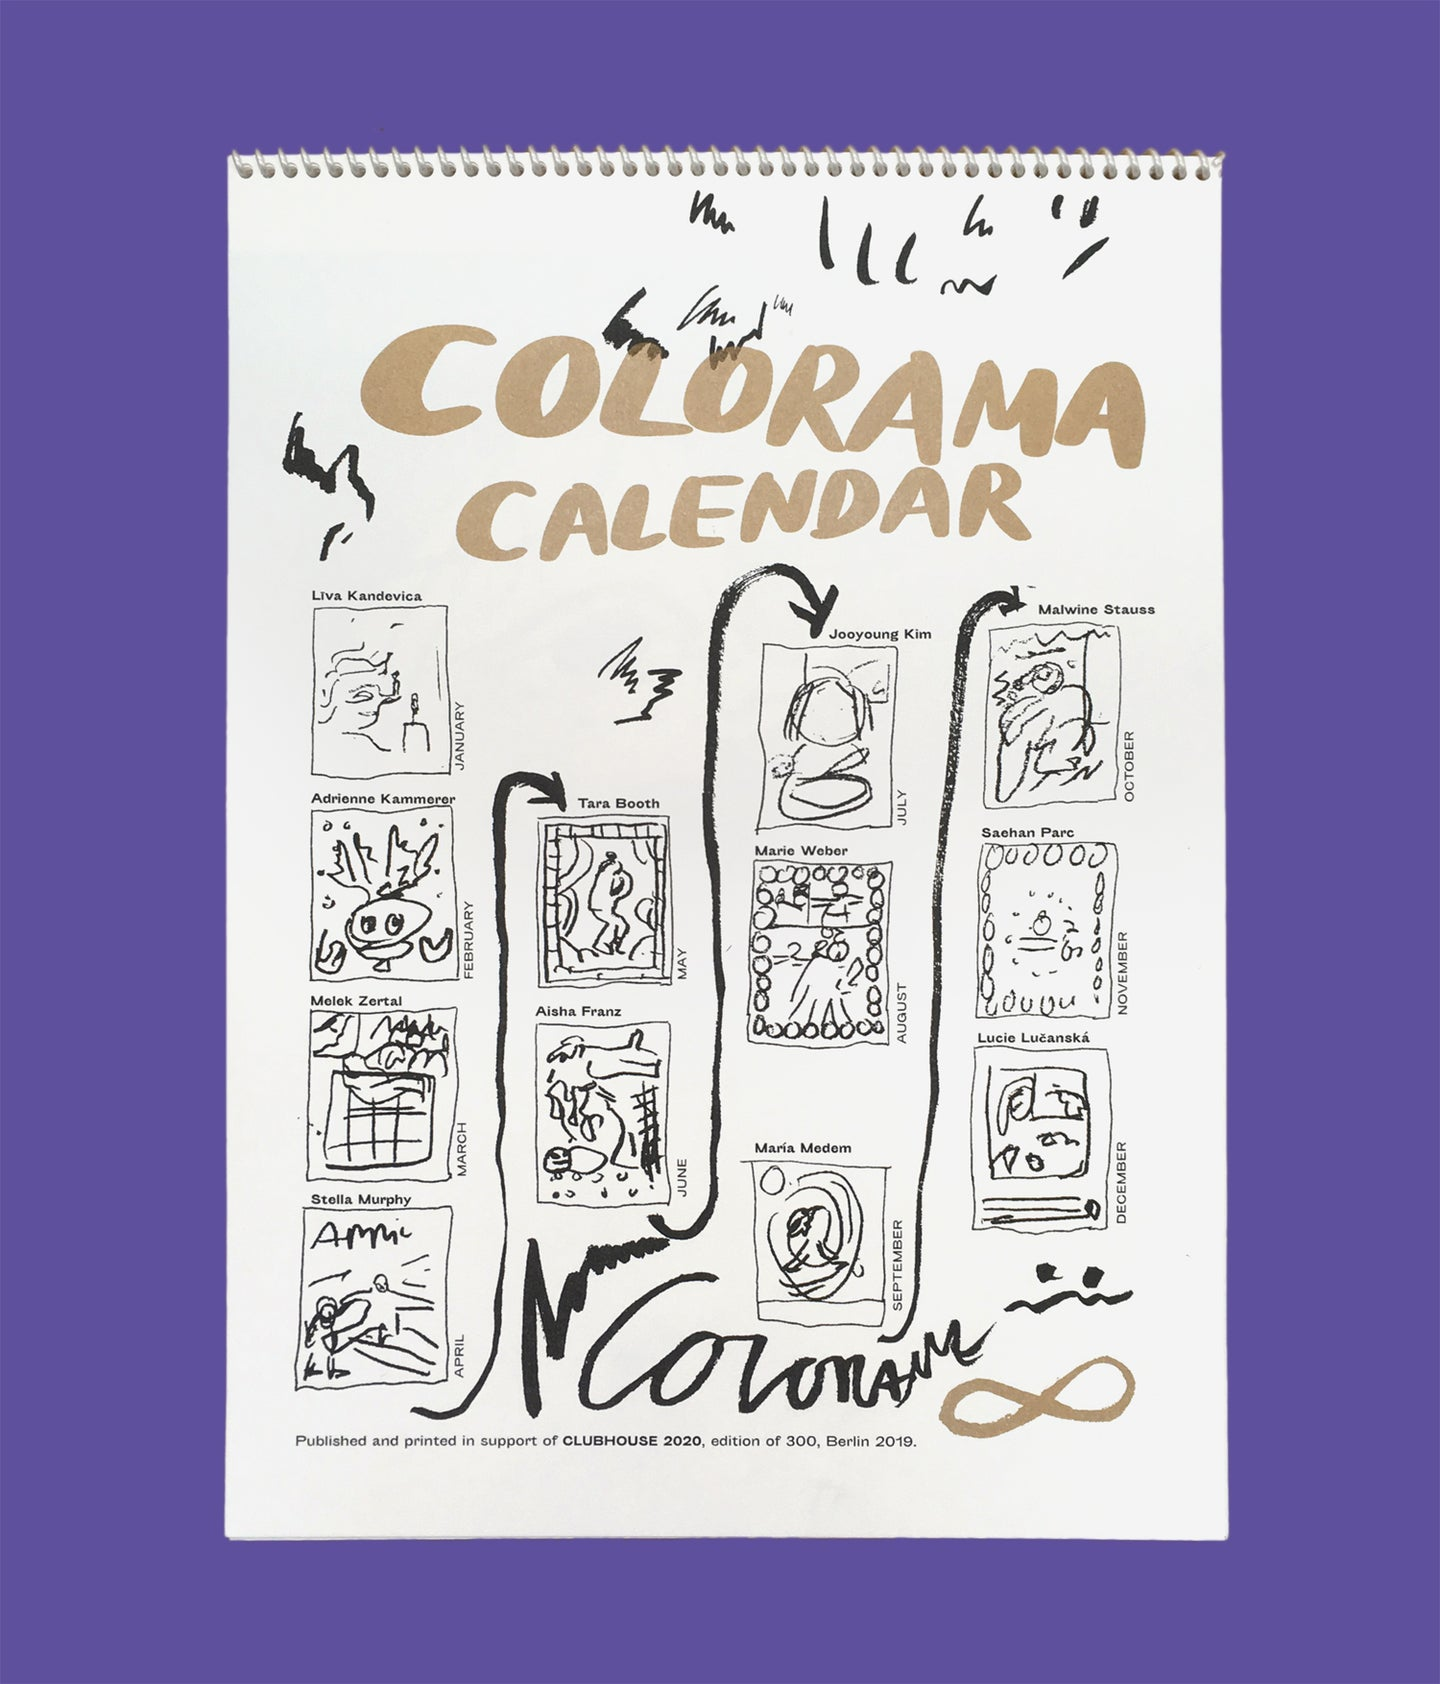 COLORAMA Calendar (this is the old perpetual one - the new 2021 coming up!)